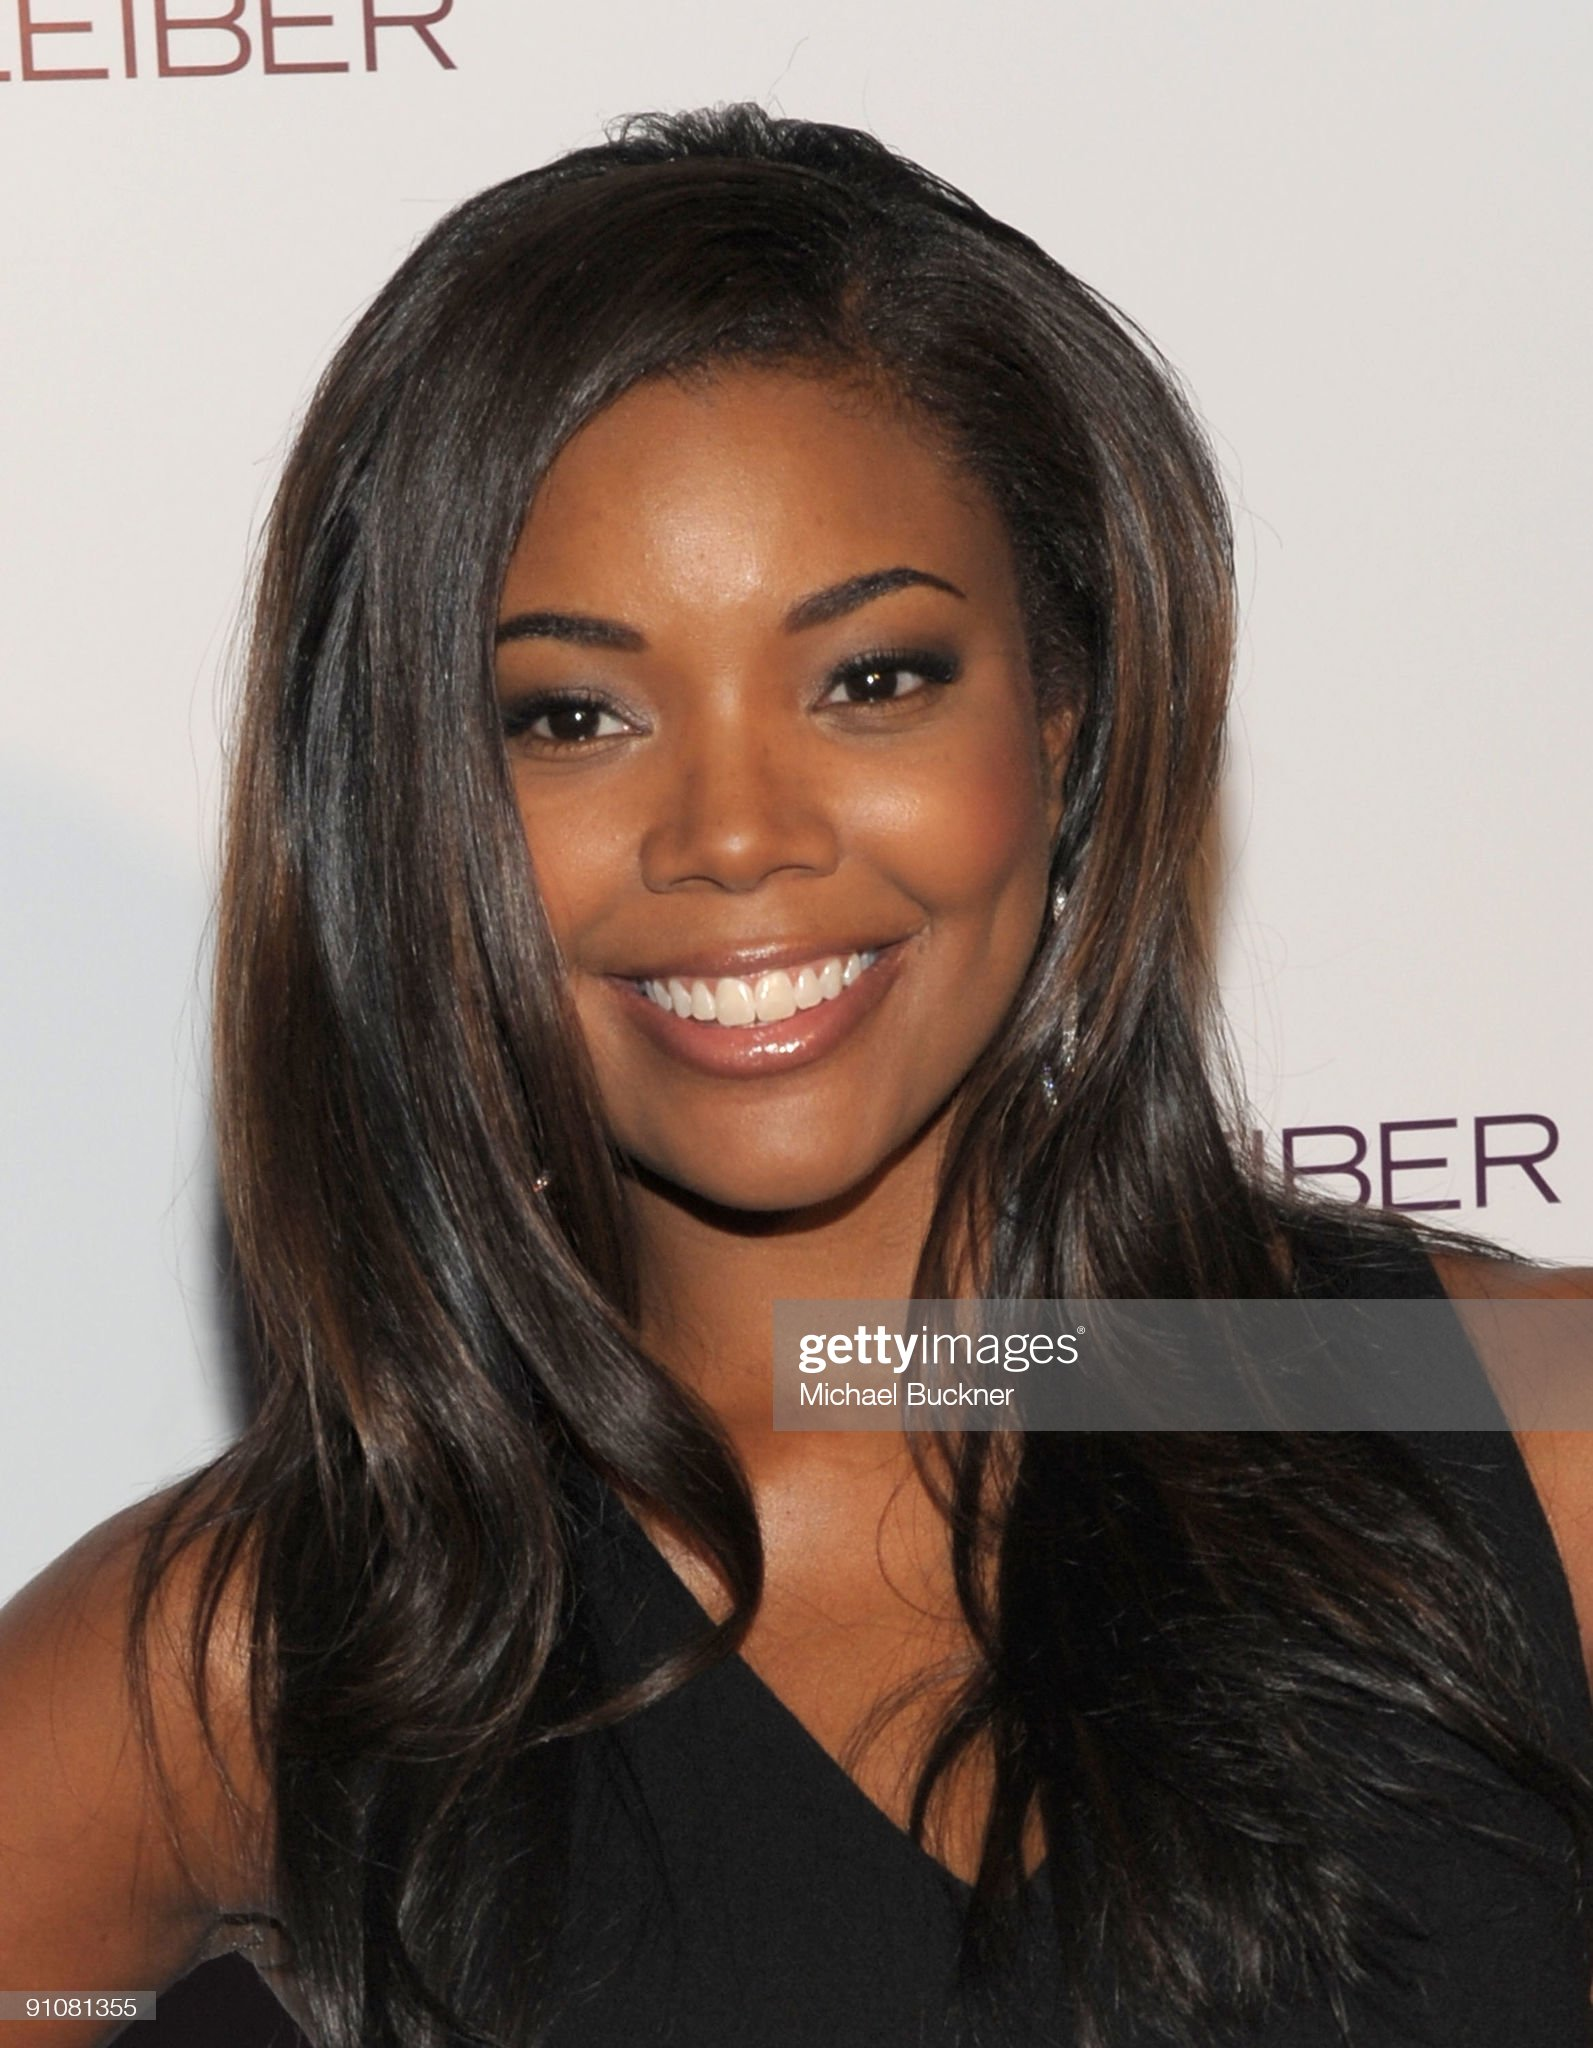 Top 80 Famosas Foroalturas - Página 2 Actress-gabrielle-union-arrives-at-the-judith-leiber-boutique-opening-picture-id91081355?s=2048x2048